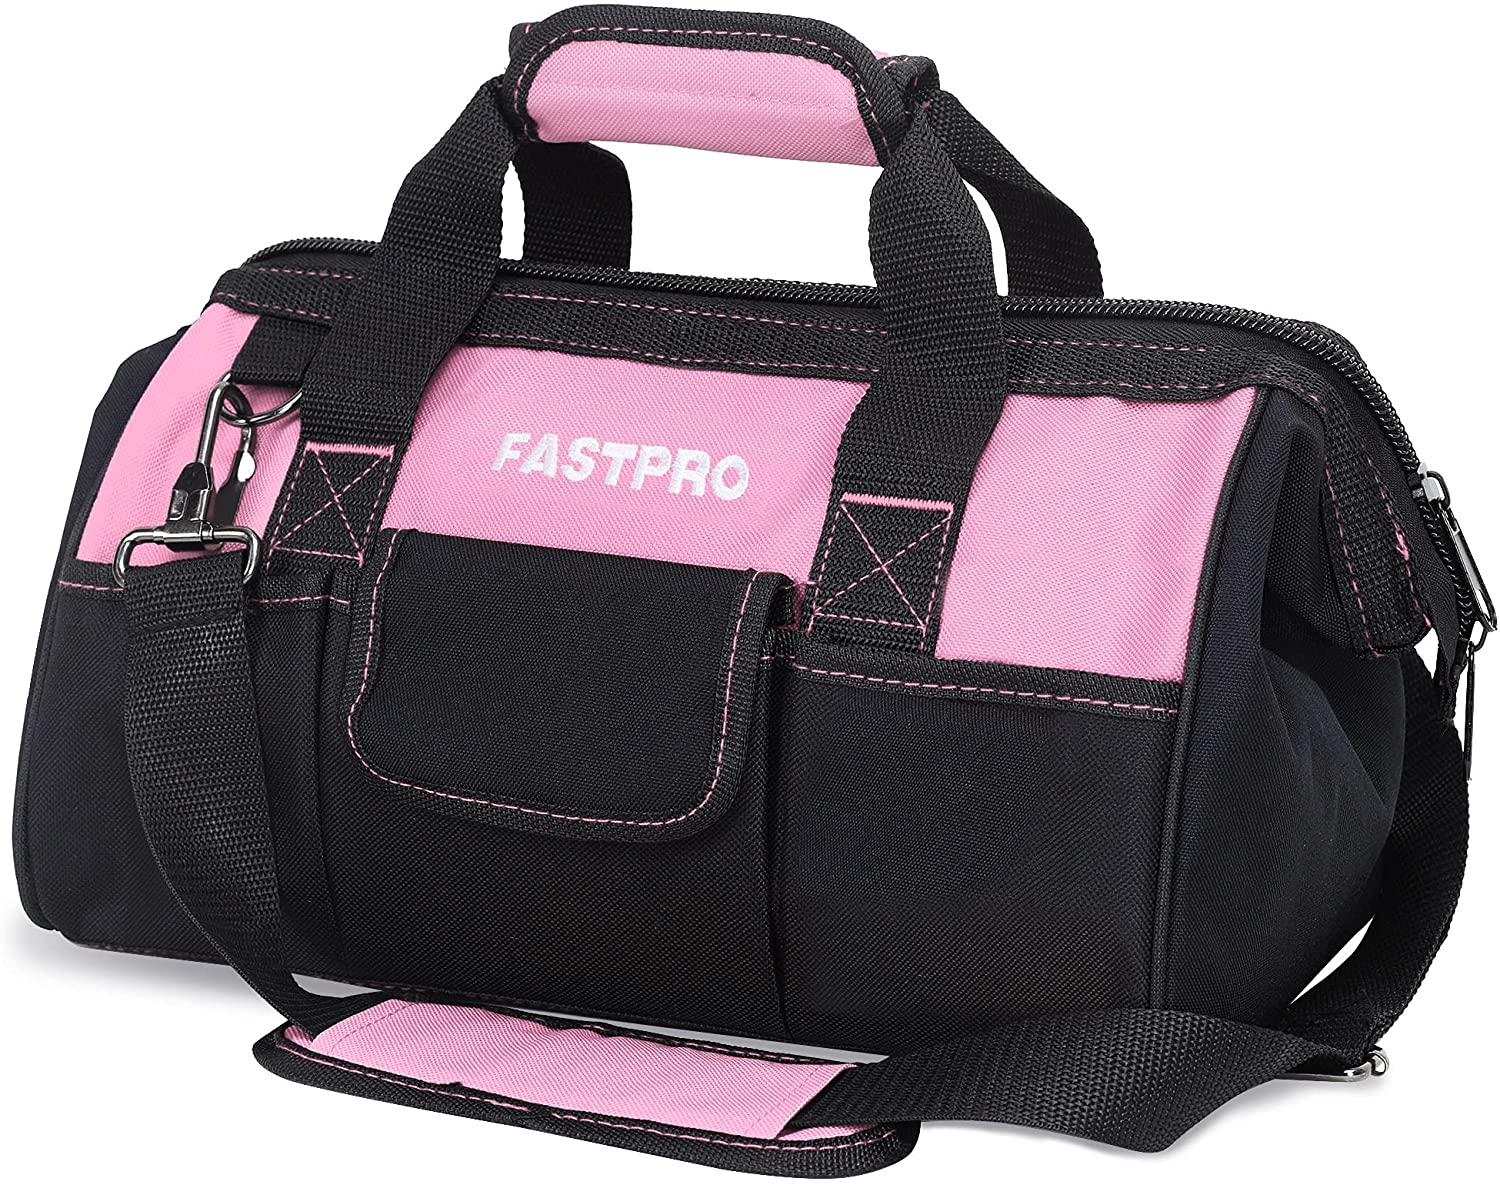 FASTPRO 14-Inch Pink Tool Bag for Zip-top Women Open Regular store Mouth Max 67% OFF Wide